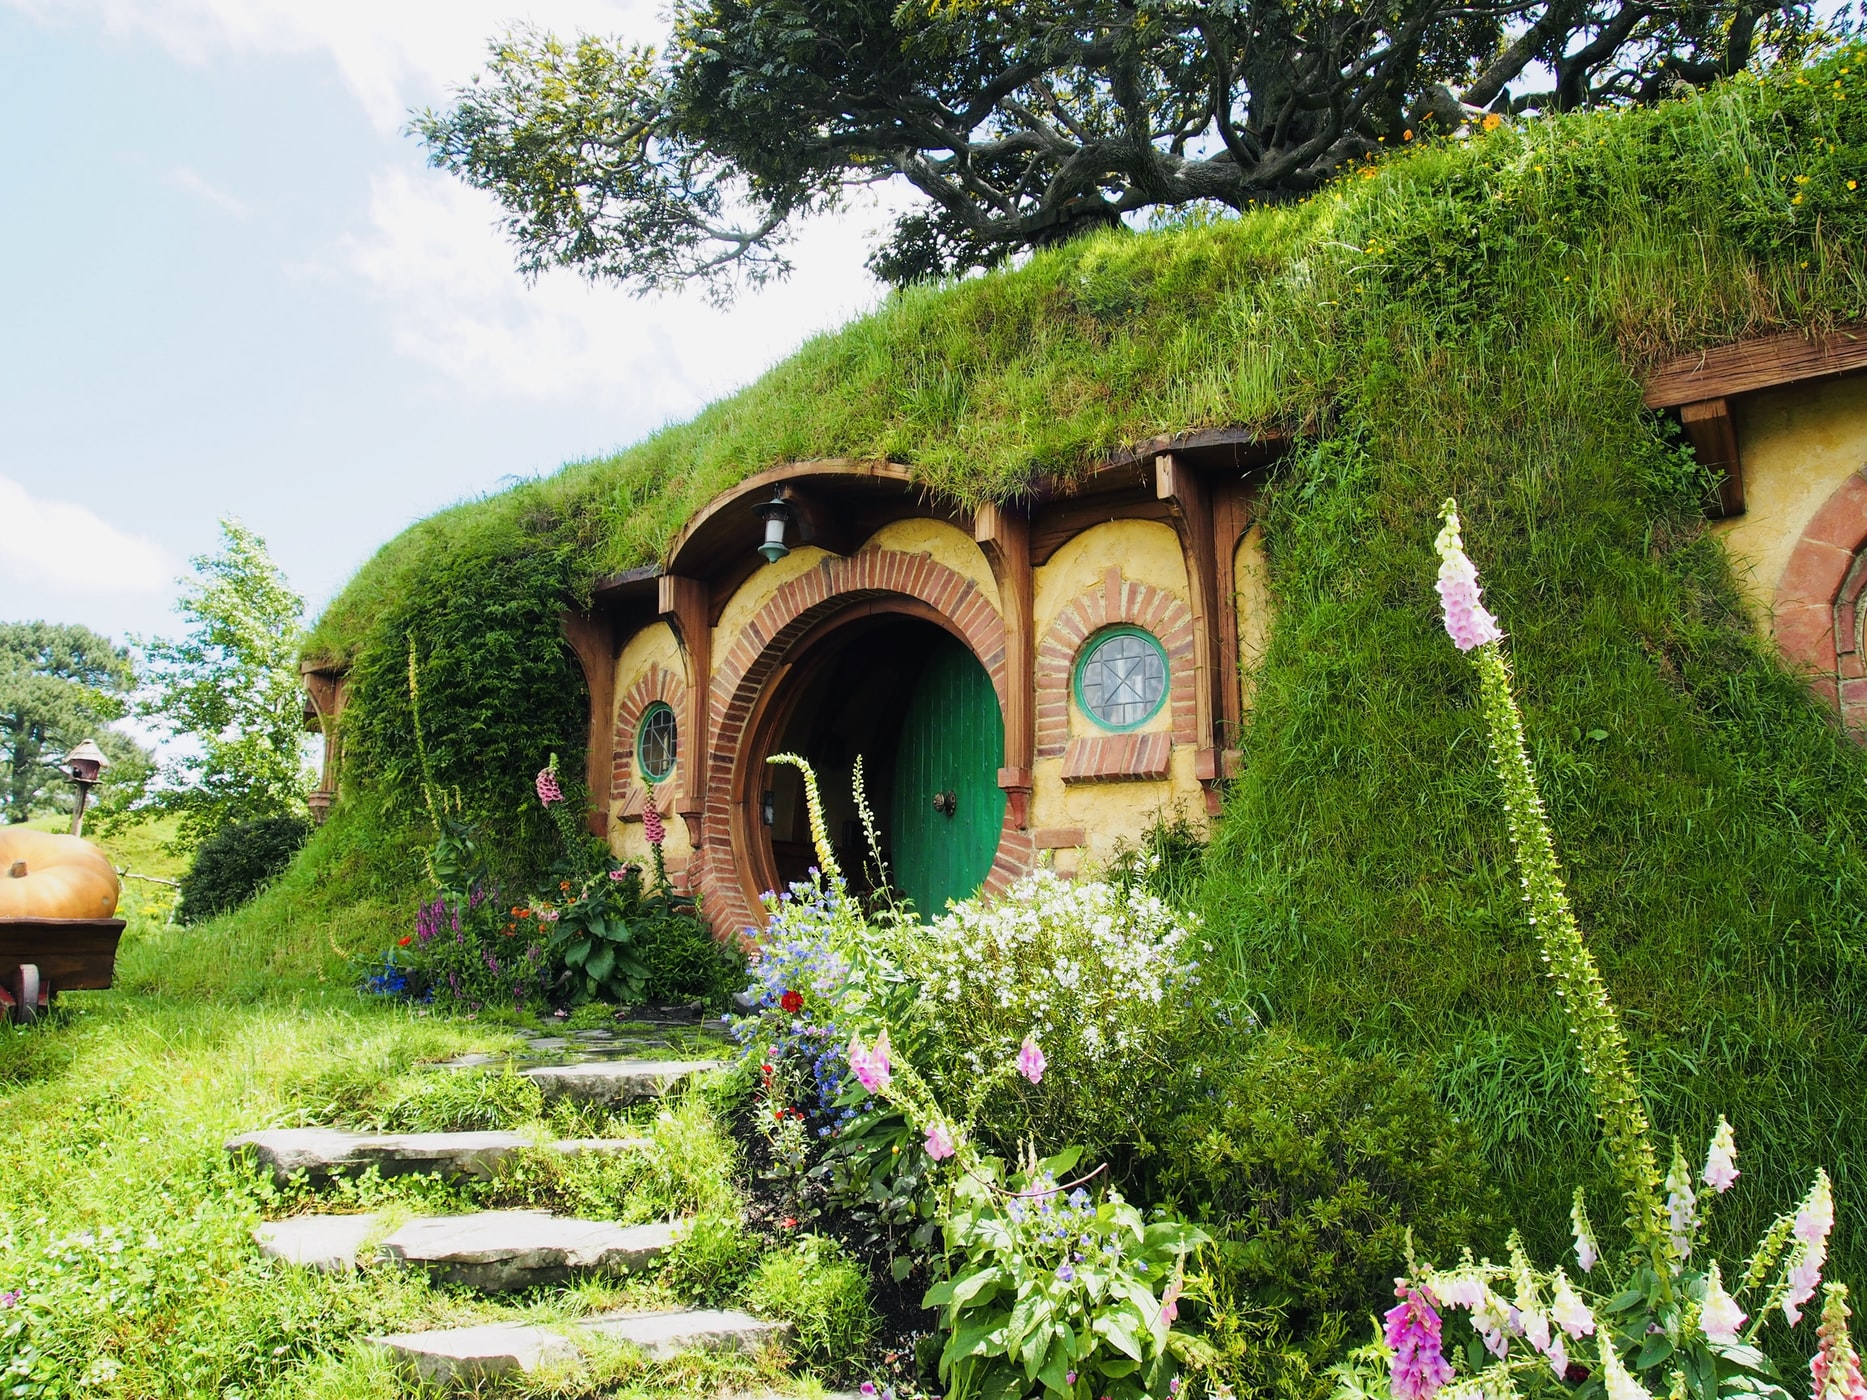 The famous Hobbiton house of Bilbo Baggins